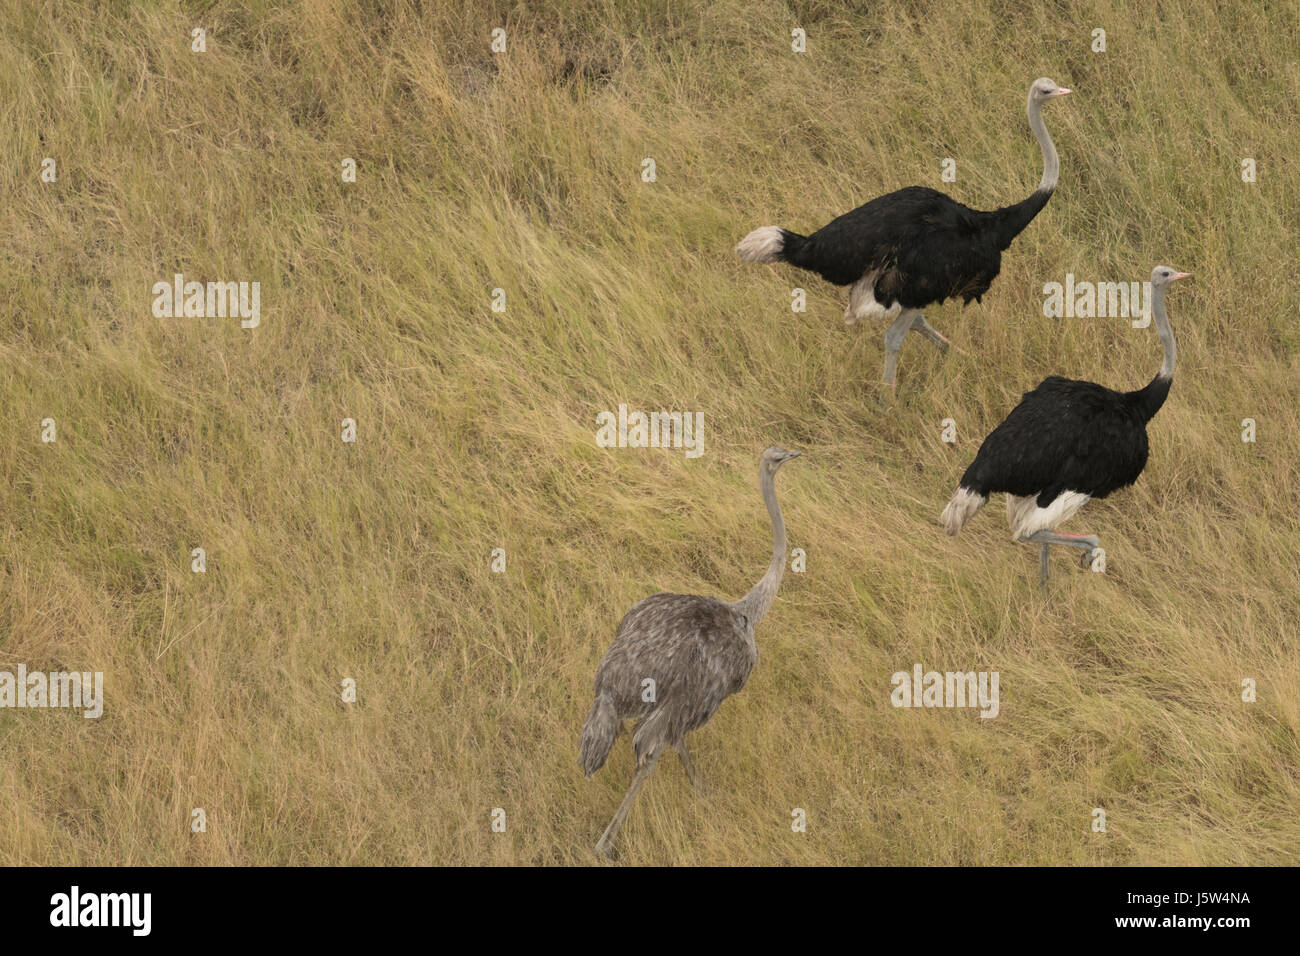 Common ostrich (Struthio camels) viewed from helicopter in Okavango Delta Botswana Stock Photo